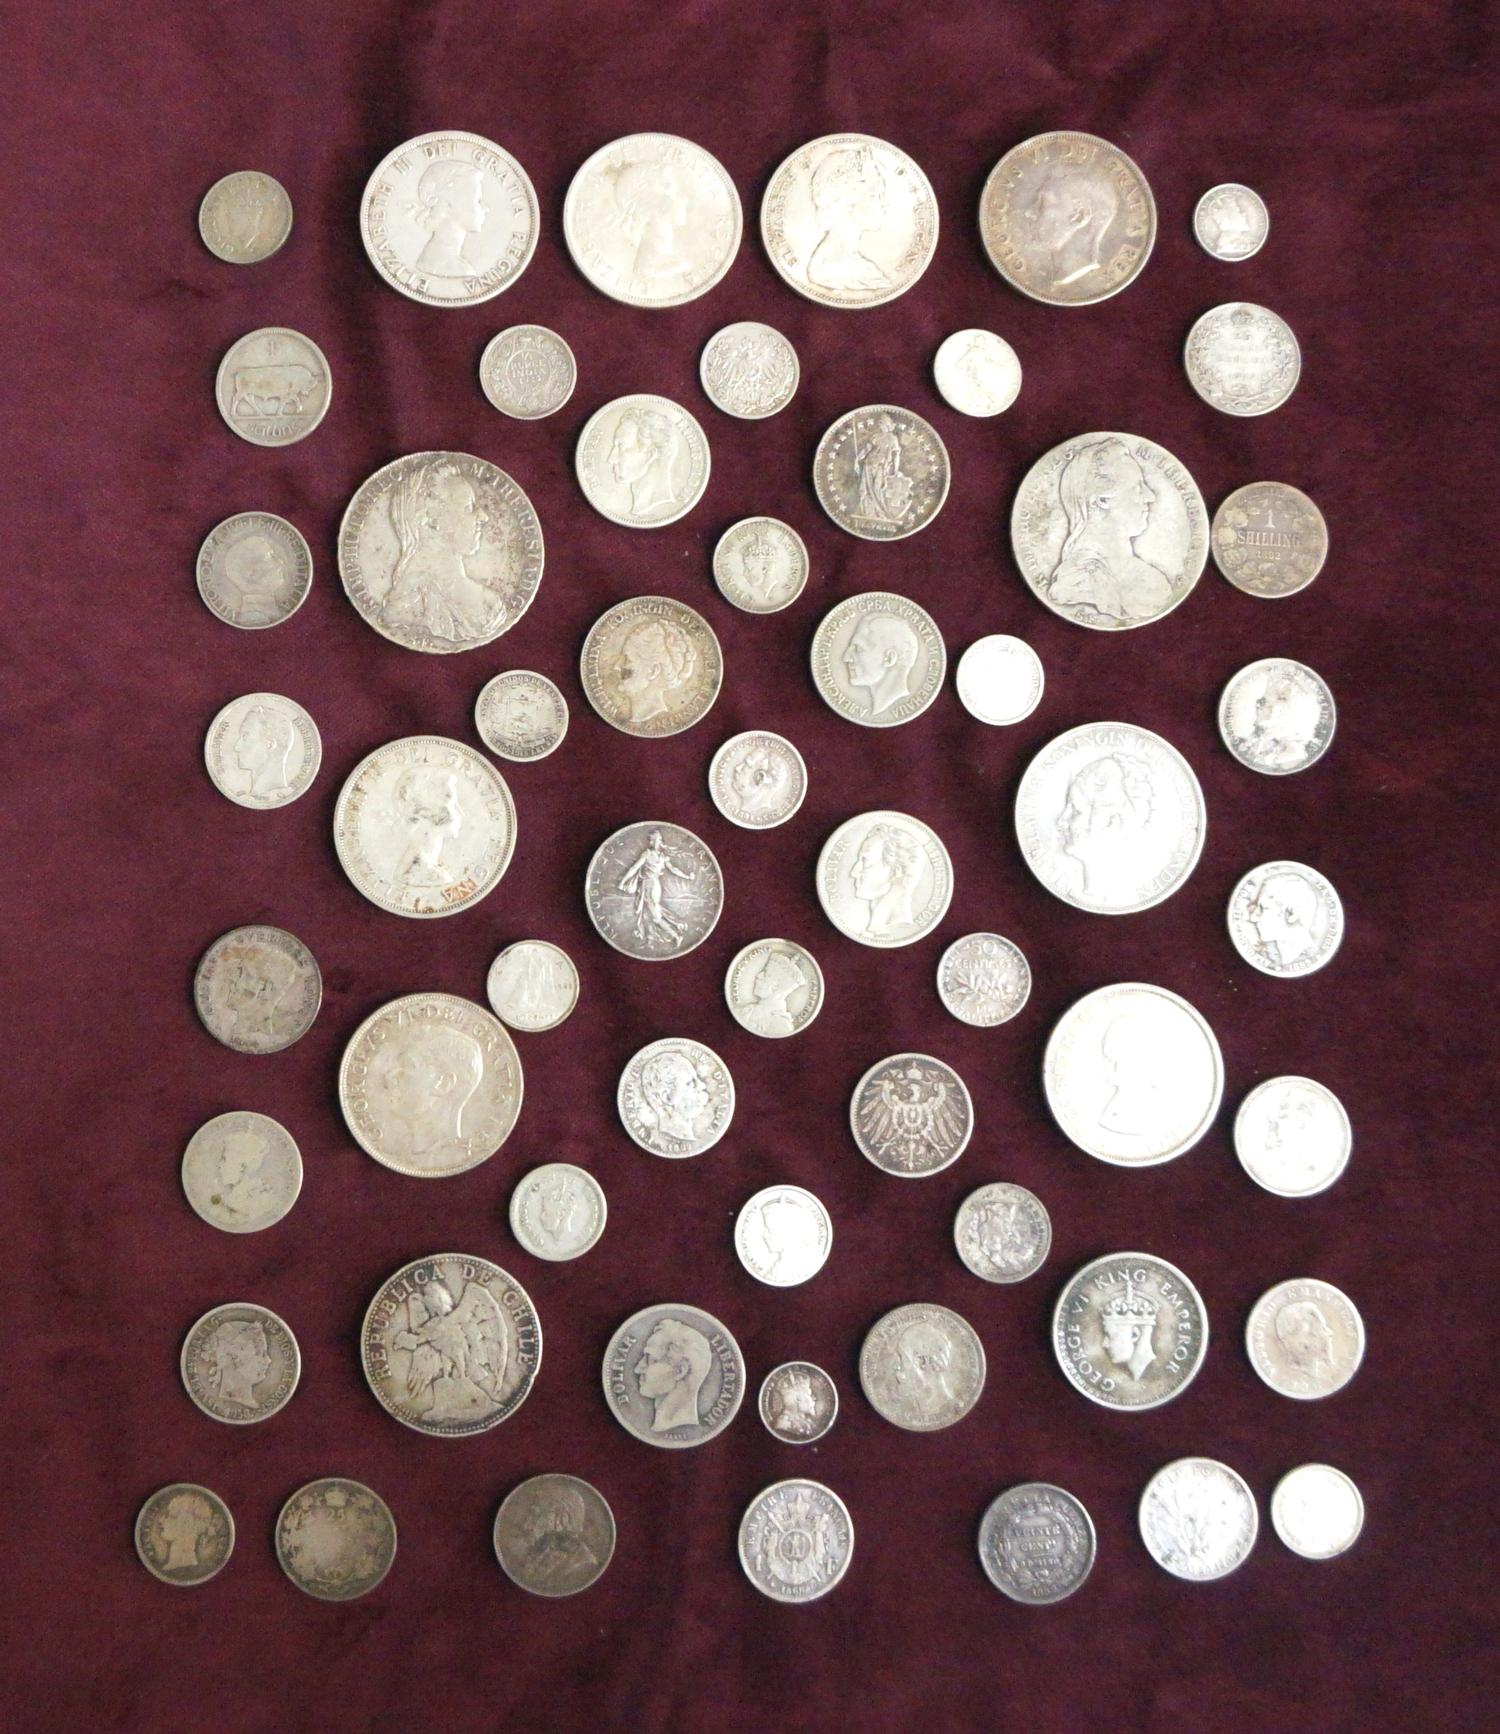 Lot 365 - SELECTION OF WORLD SILVER COINS silver content ranging from .925 to .500, including two Maria